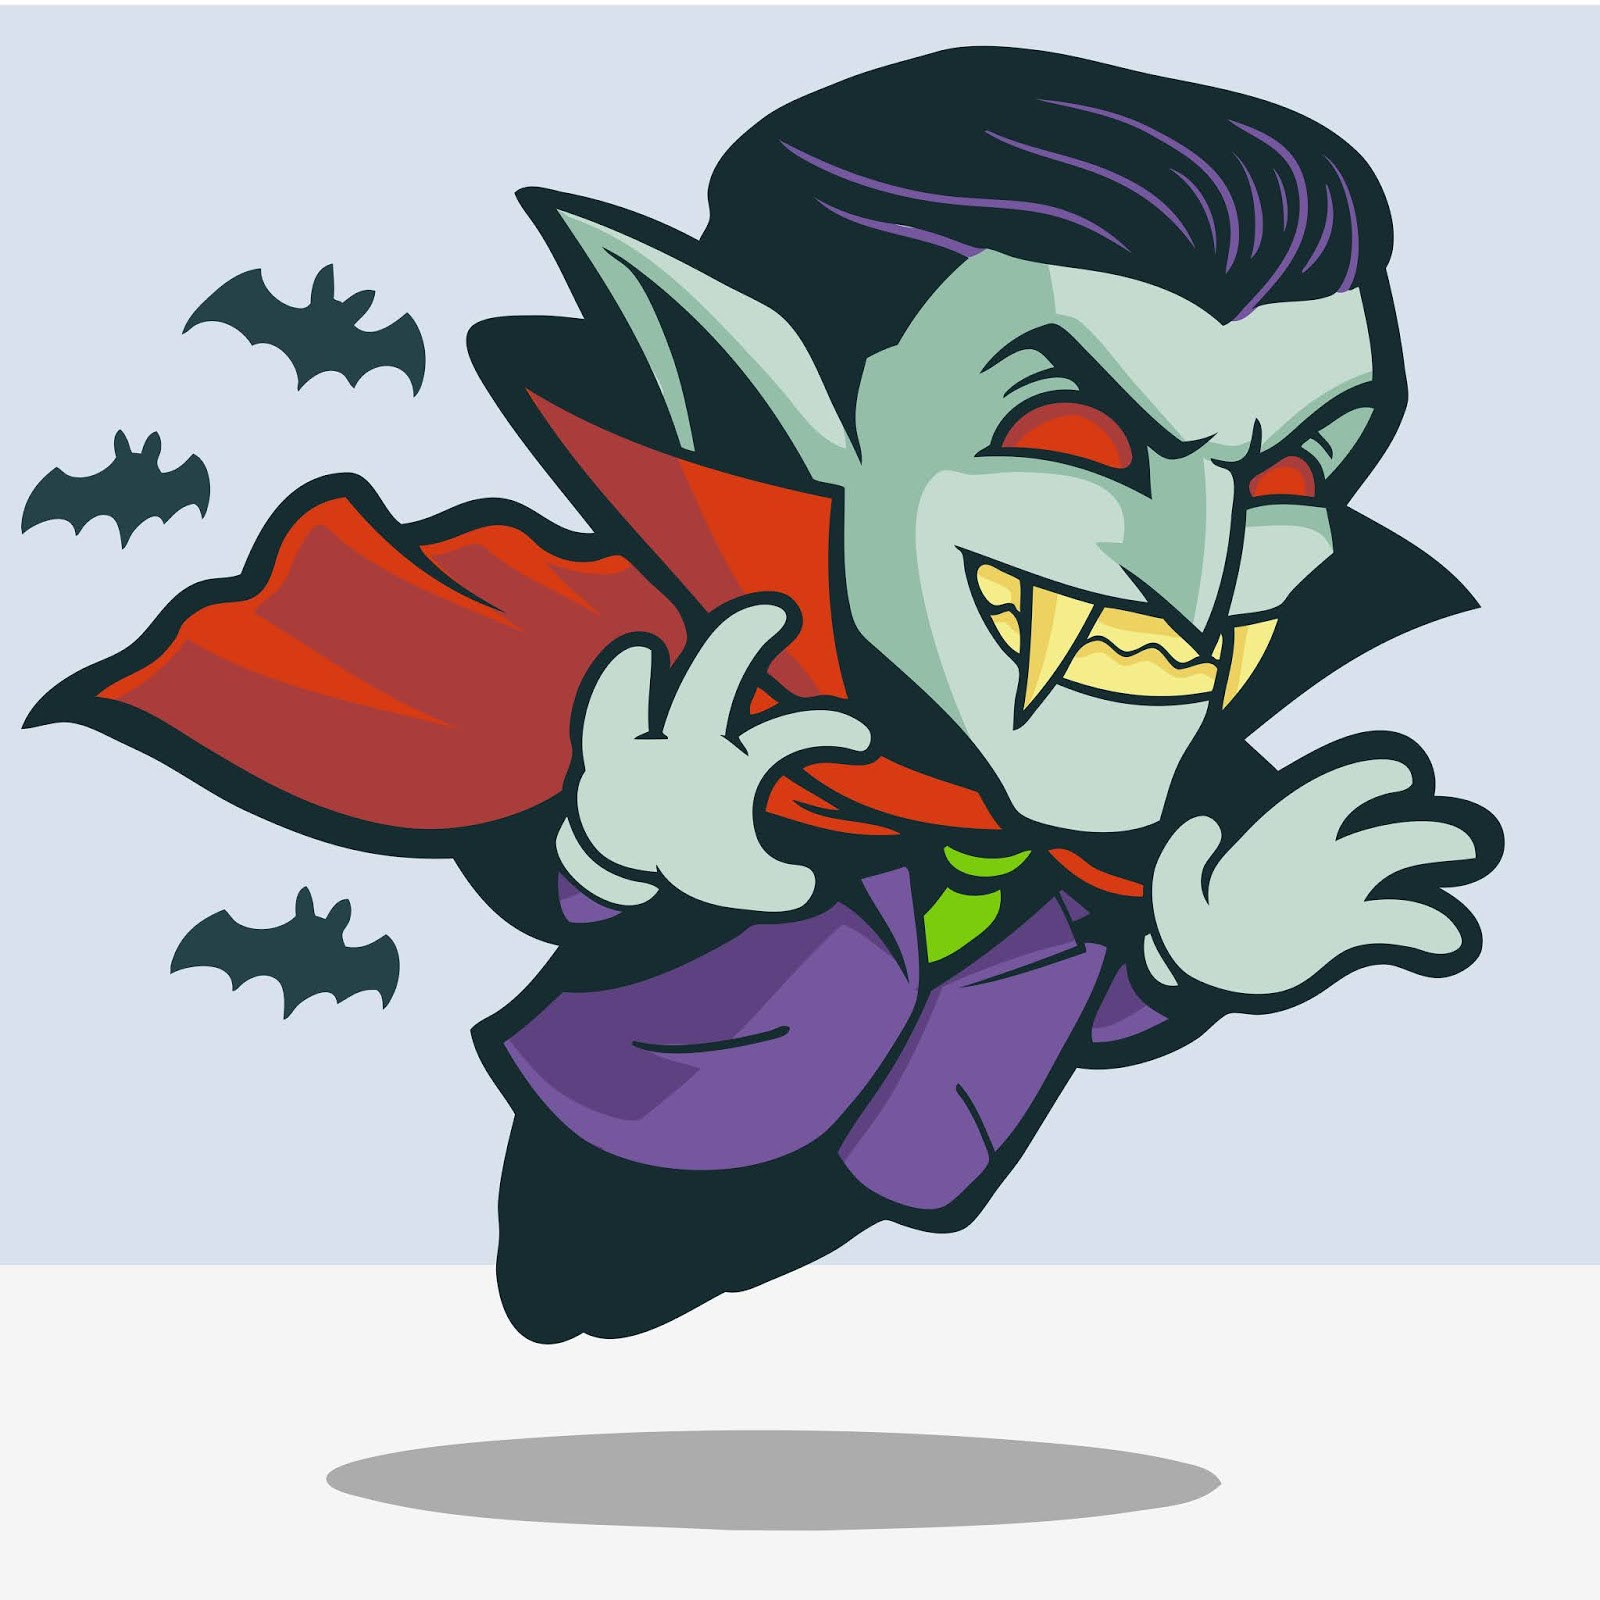 Cute Dracula Flying With Bats Free Download Vector CDR, AI, EPS and PNG Formats